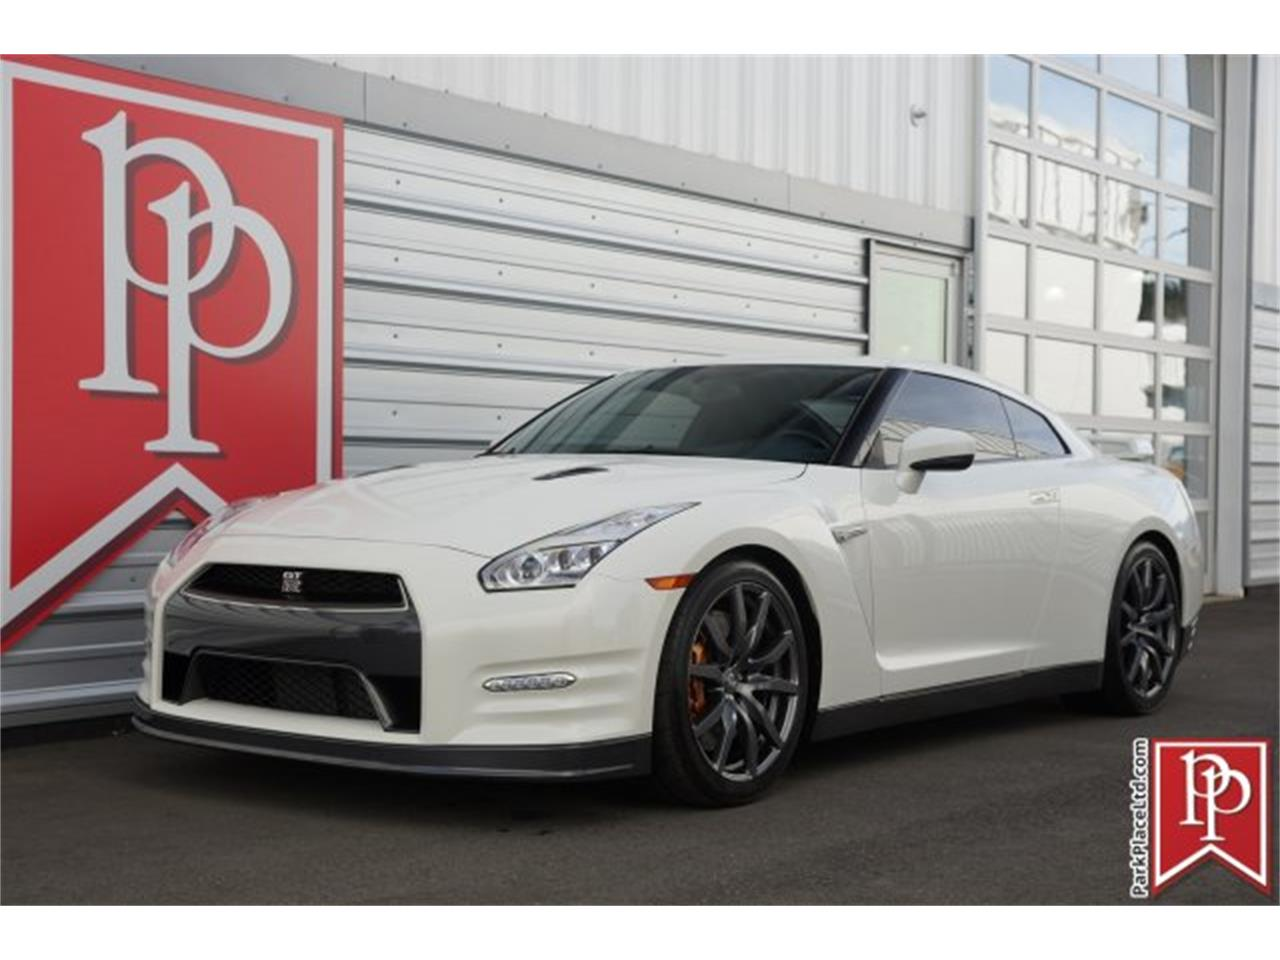 Large Picture of 2015 Nissan GT-R located in Bellevue Washington - $83,950.00 - MZF7